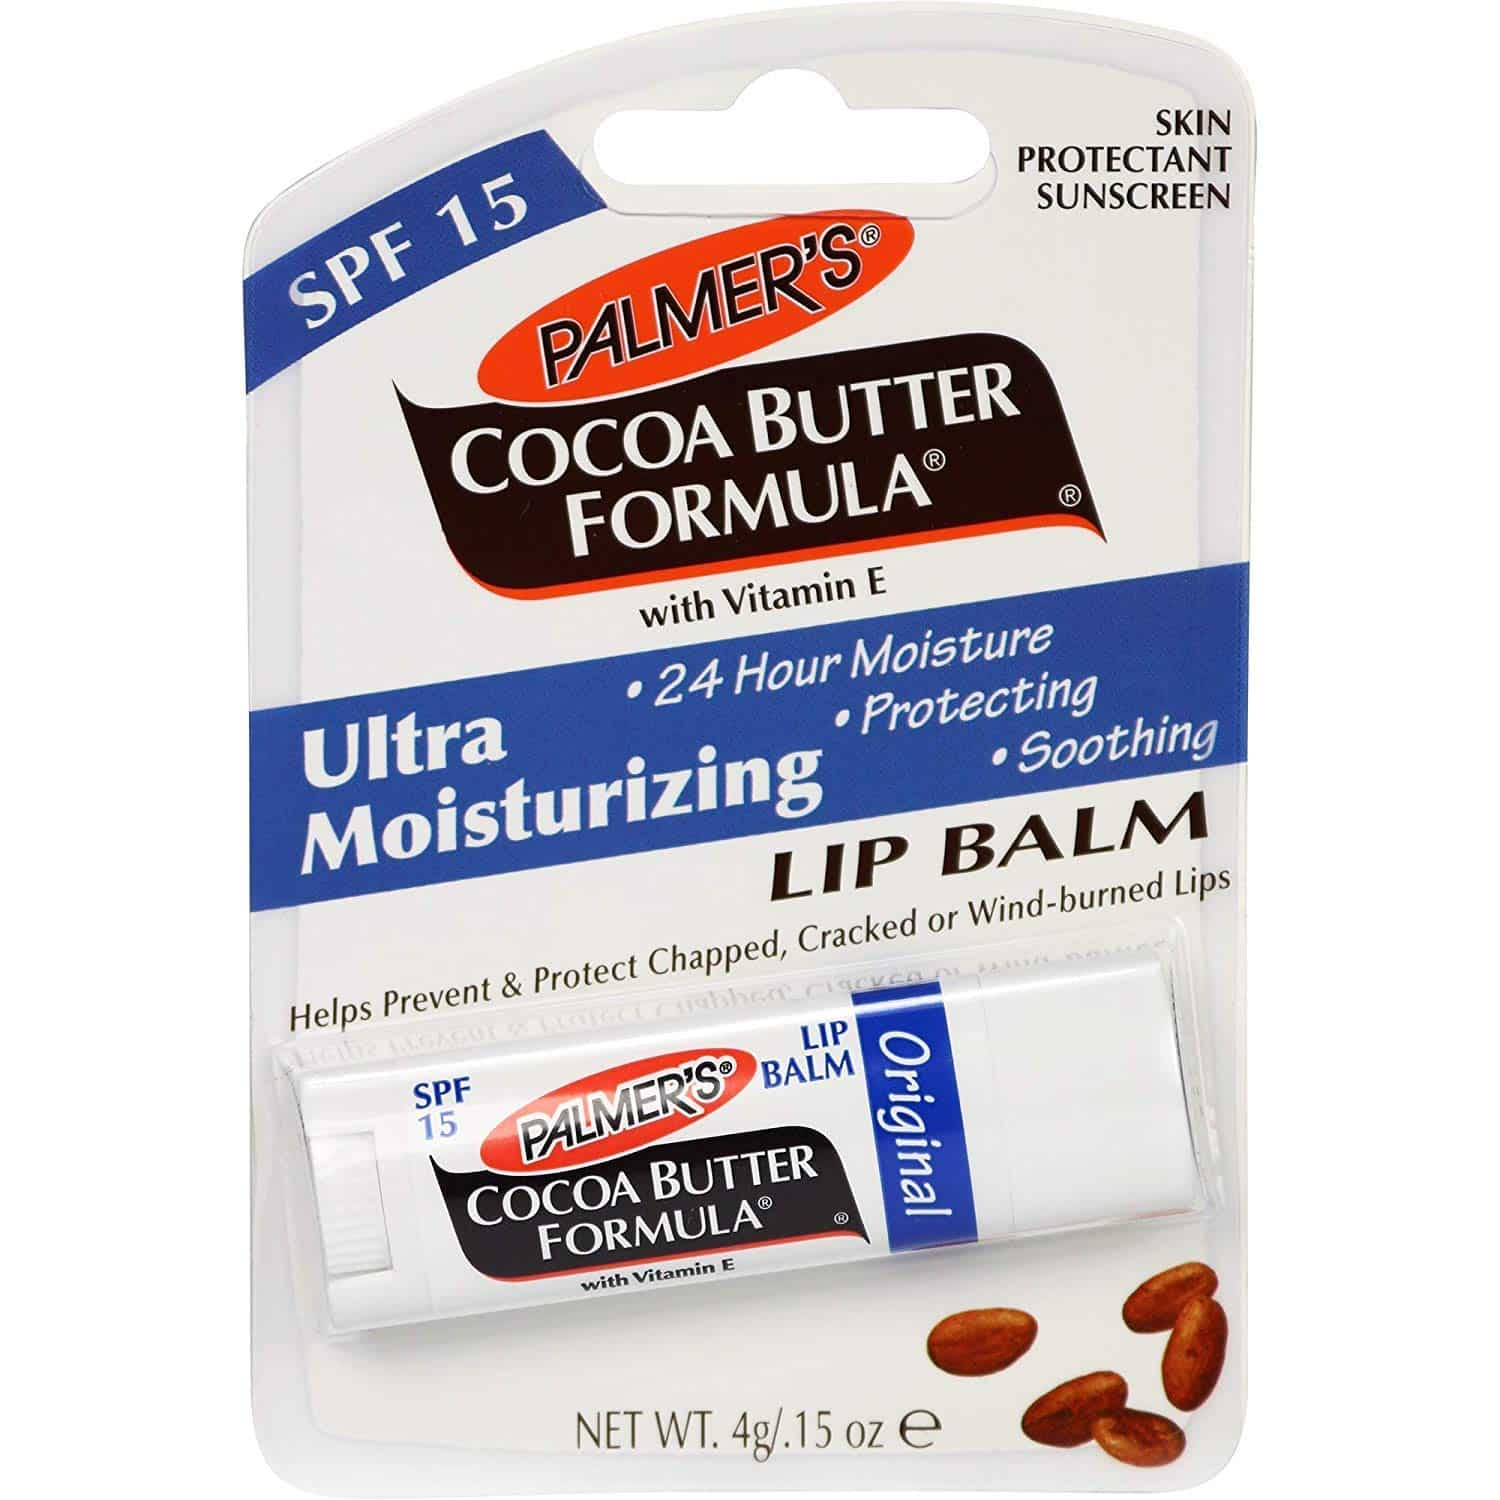 Palmers-Cocoa-Butter-Formula-Rp-39.00000